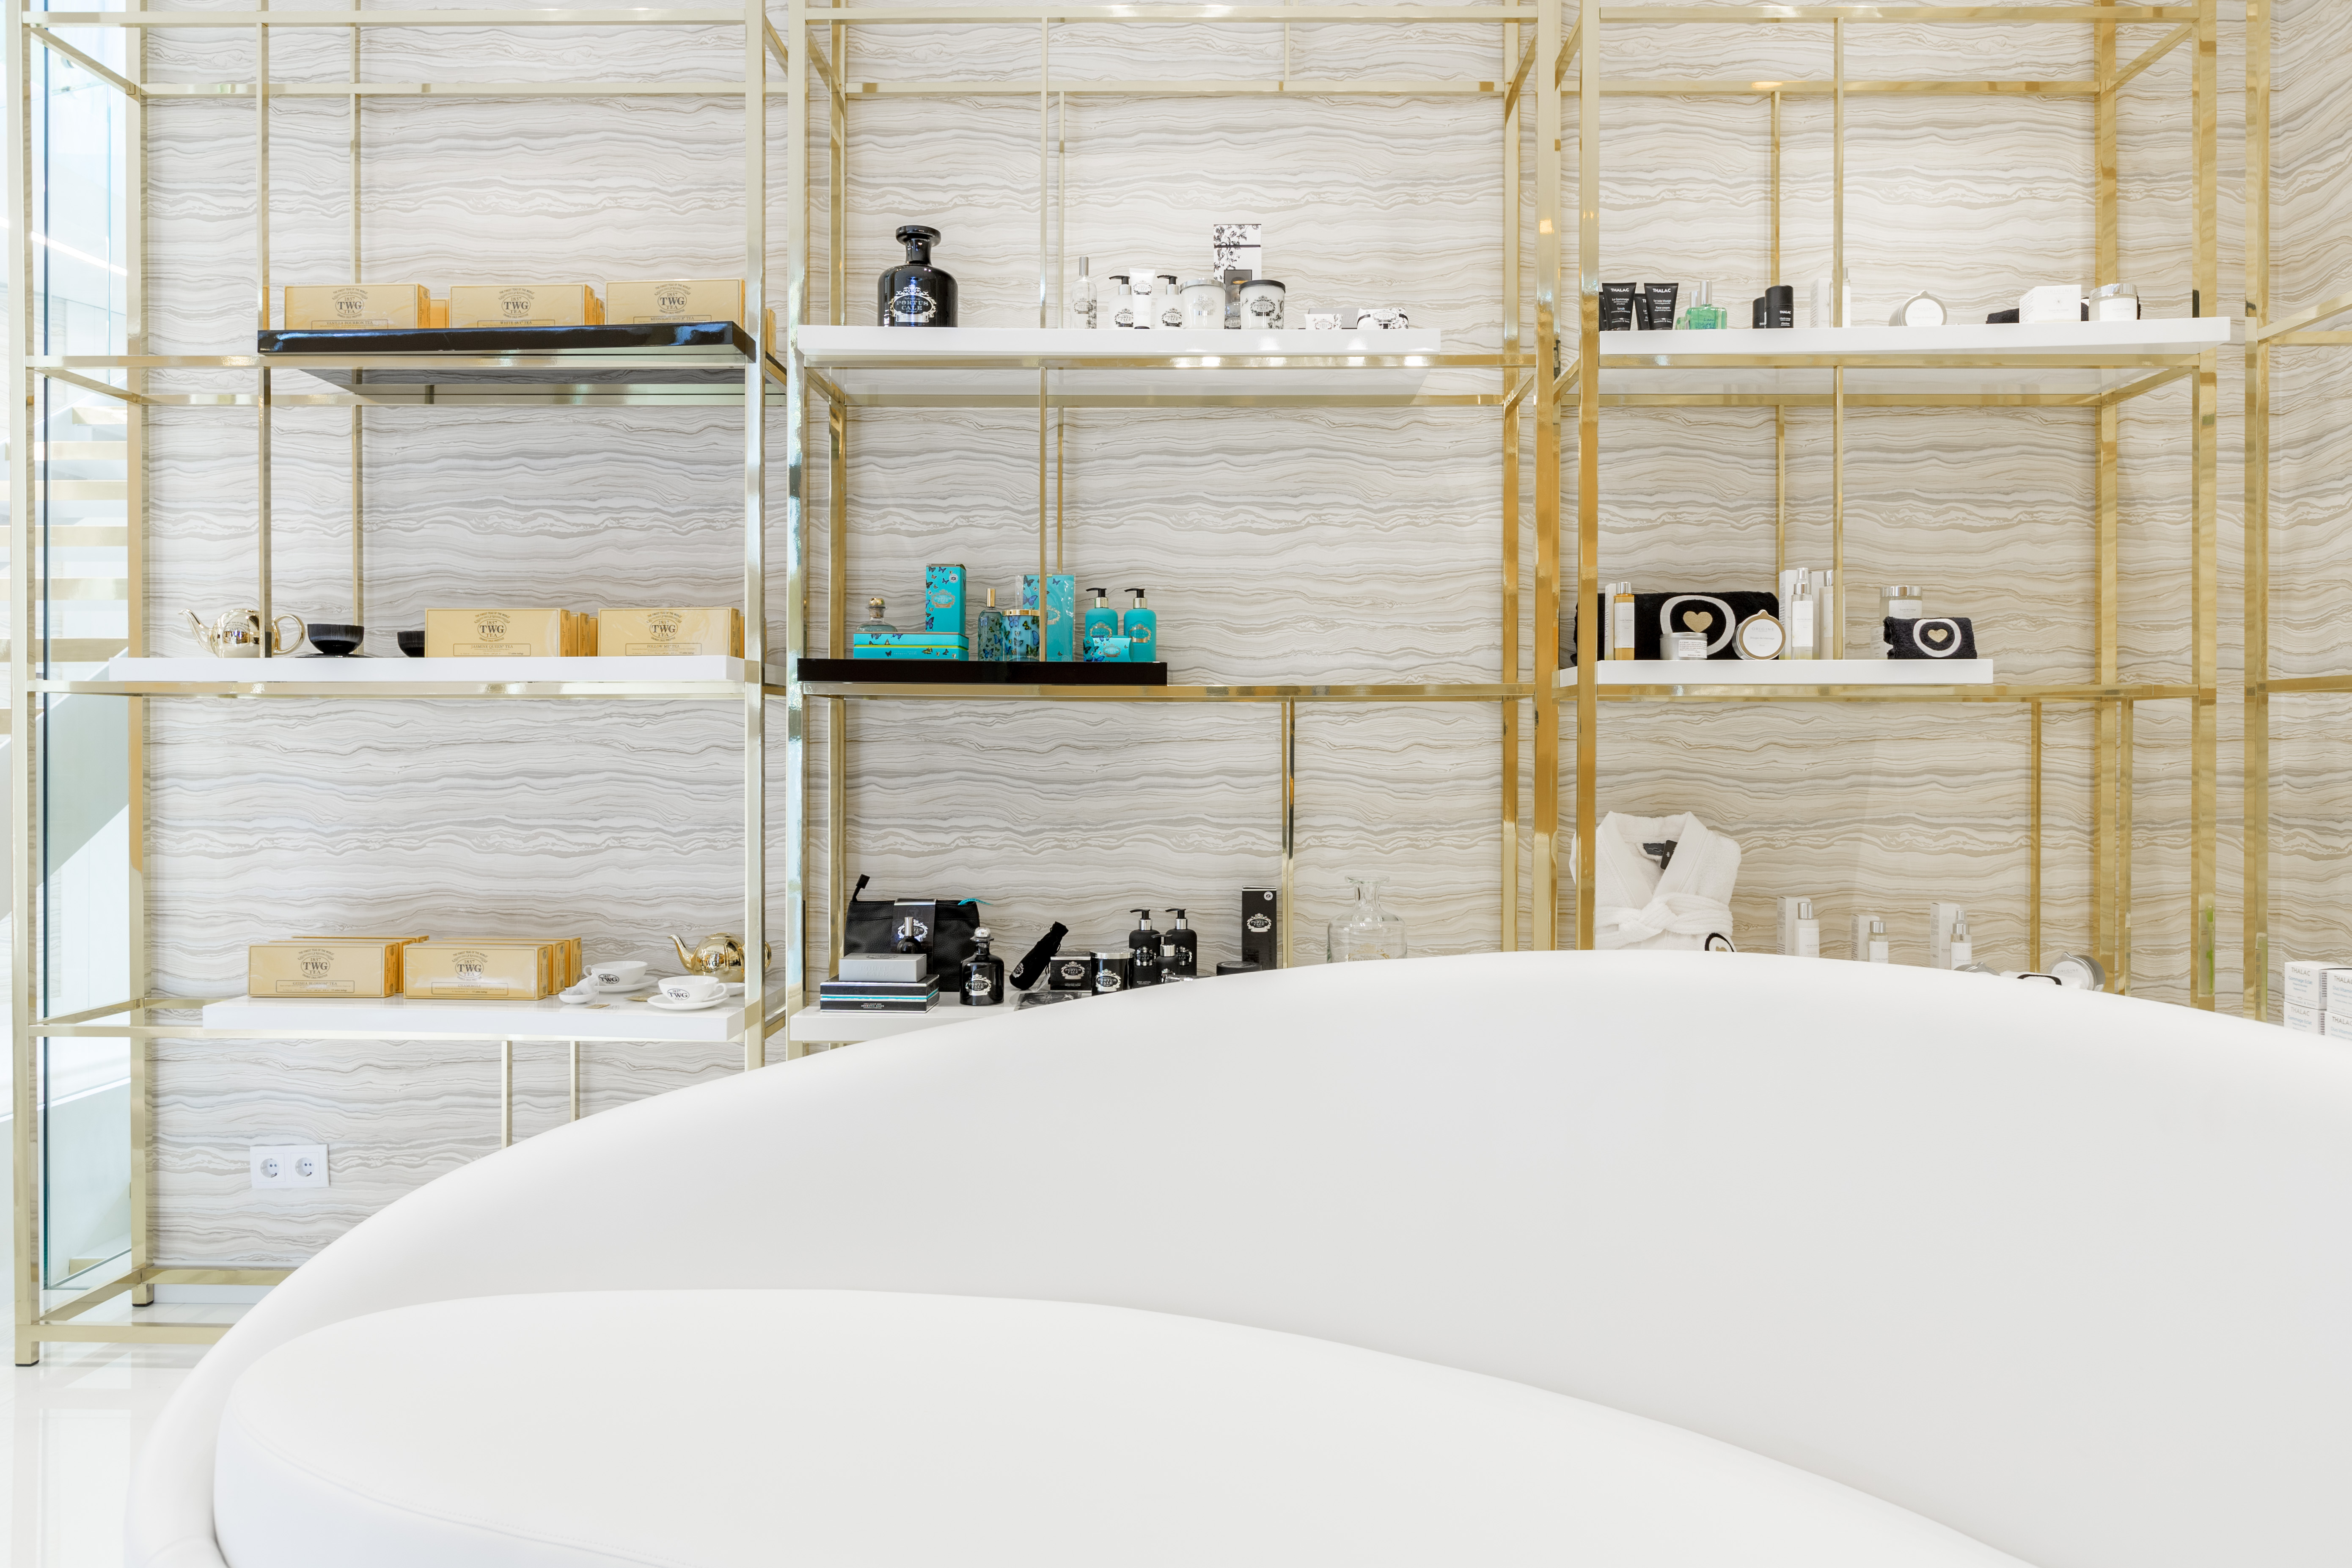 iLOVESKIN: The Spa You Need to Try iloveskin, iLOVESKIN: The Spa You Need to Try ILoveSkin 15